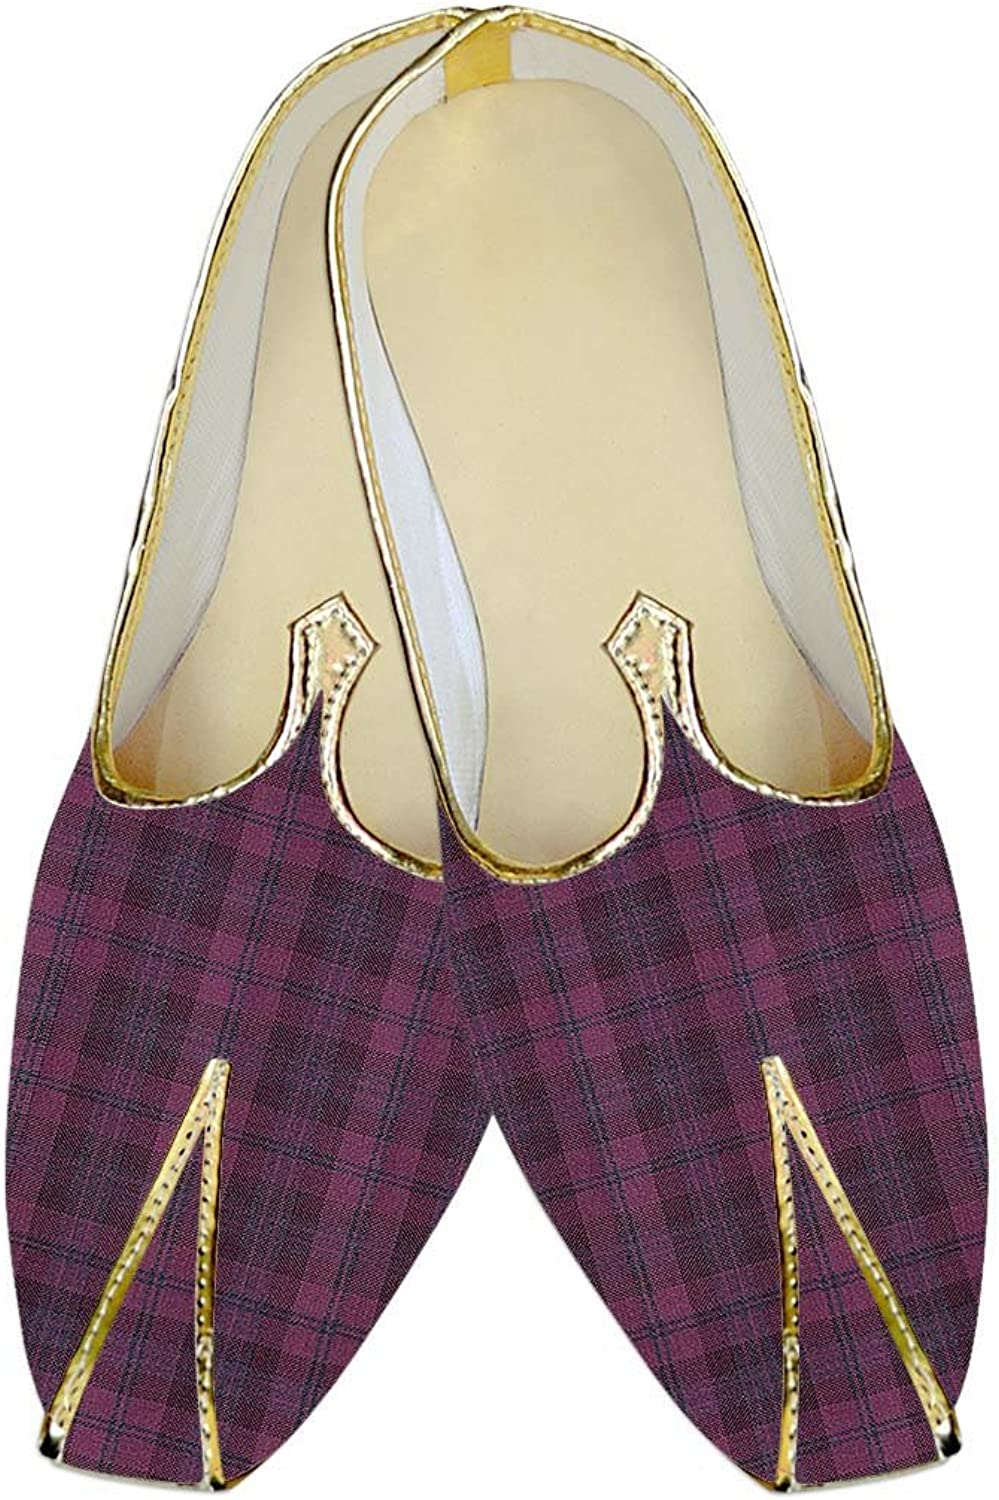 INMONARCH Mens Pink Checks Poly Viscose Wedding shoes MJ015611